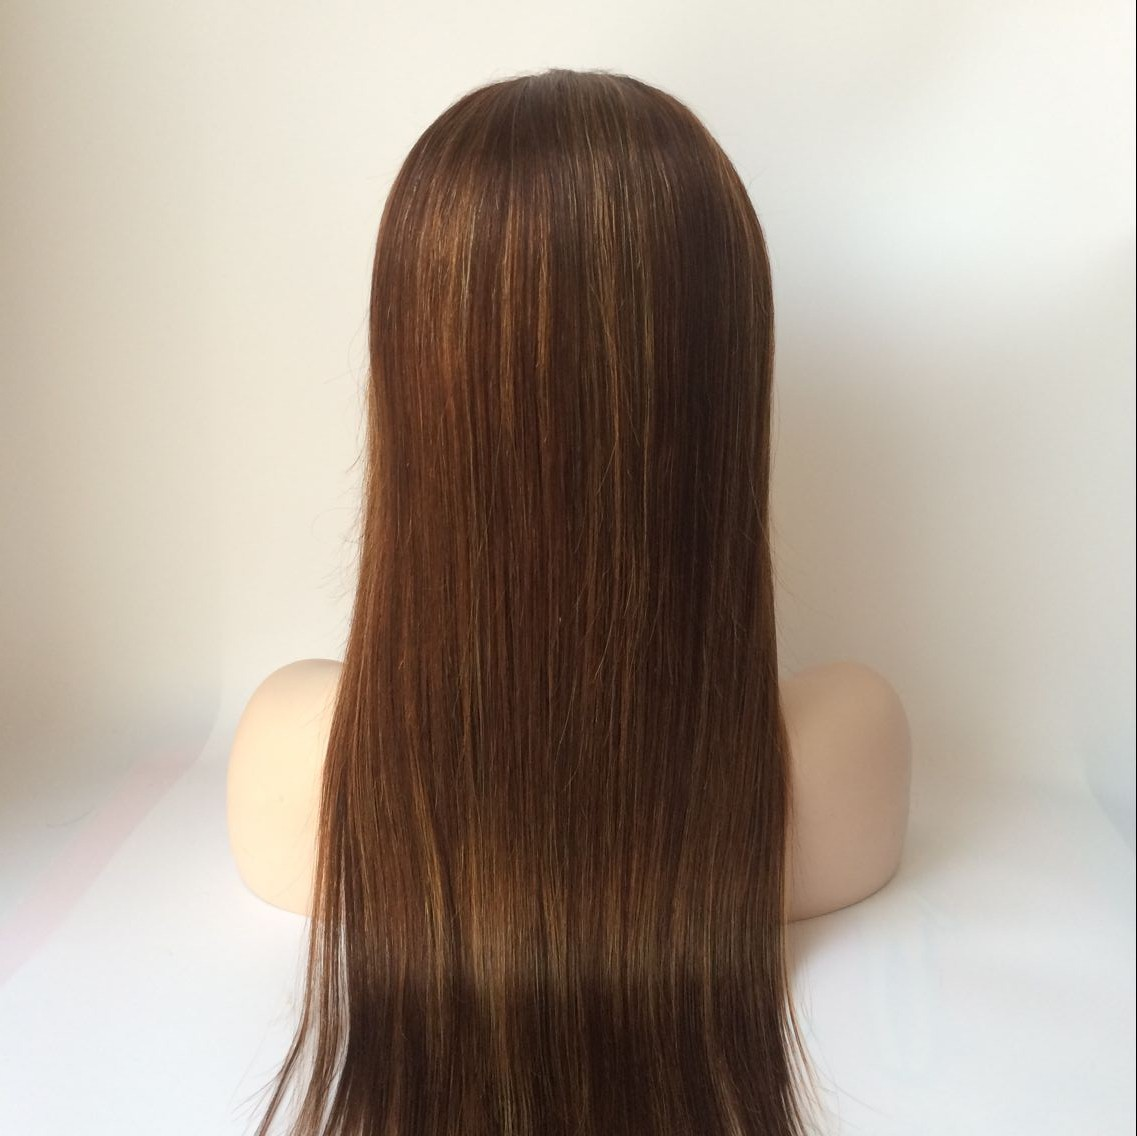 22inch color4 Brazilian hair straight lace front wig